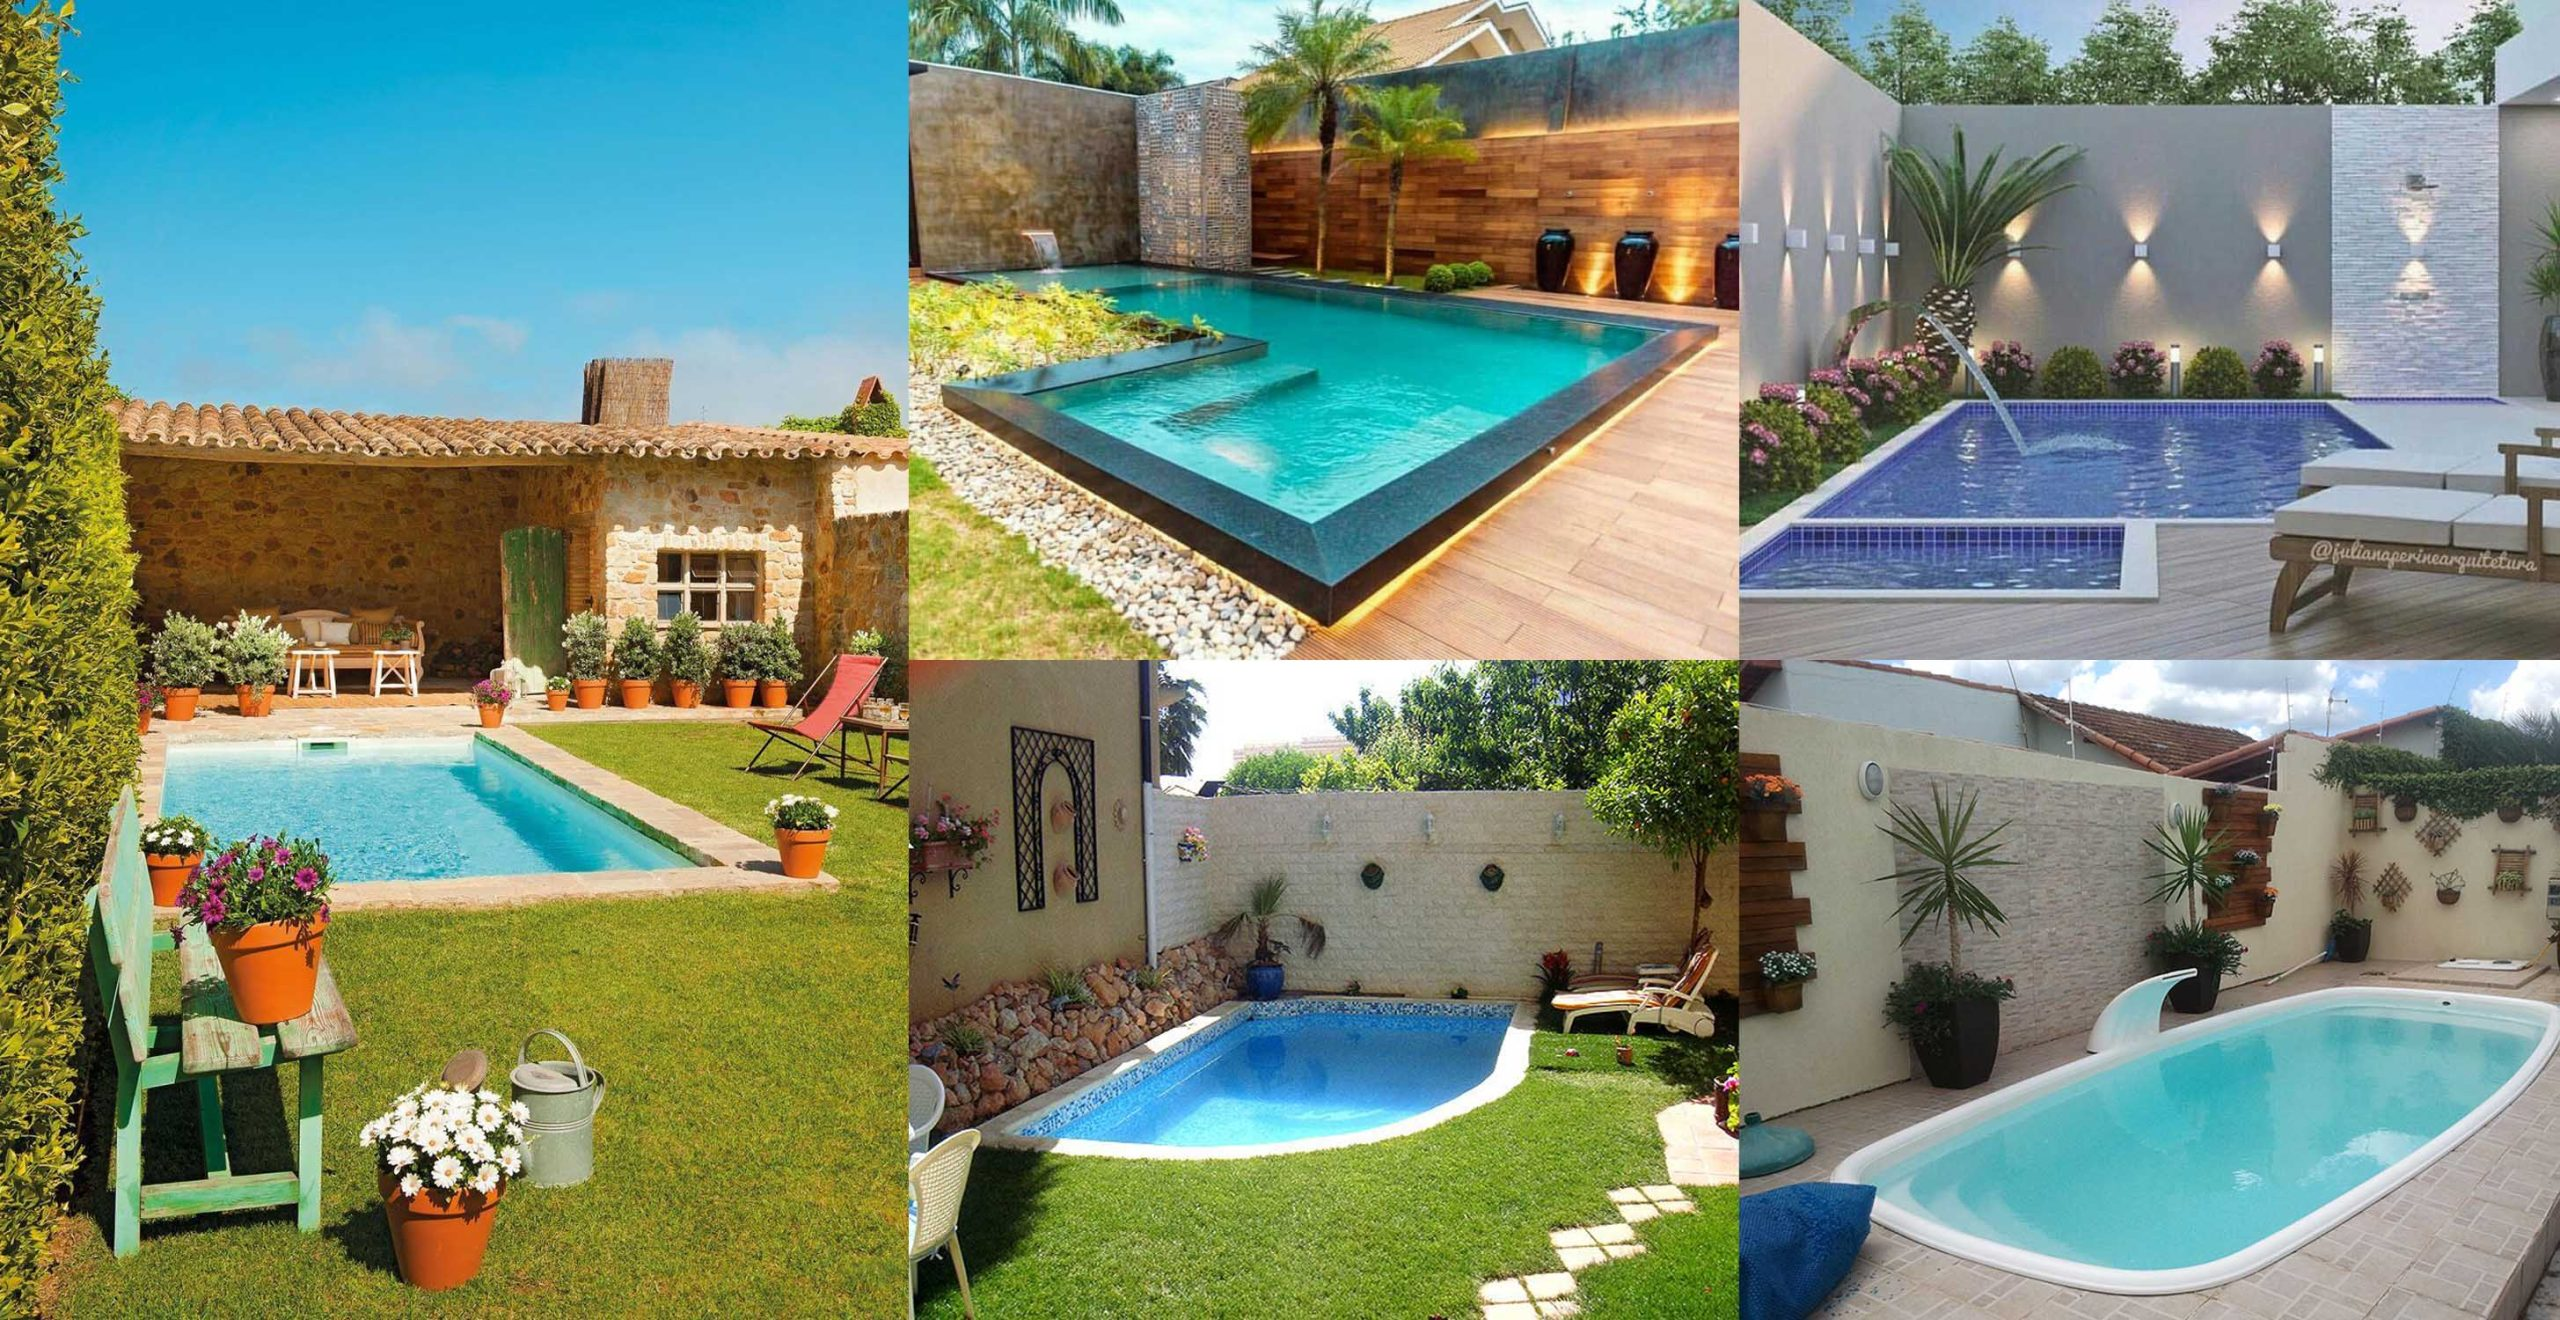 Top 40 Amazing Small Pool Ideas For